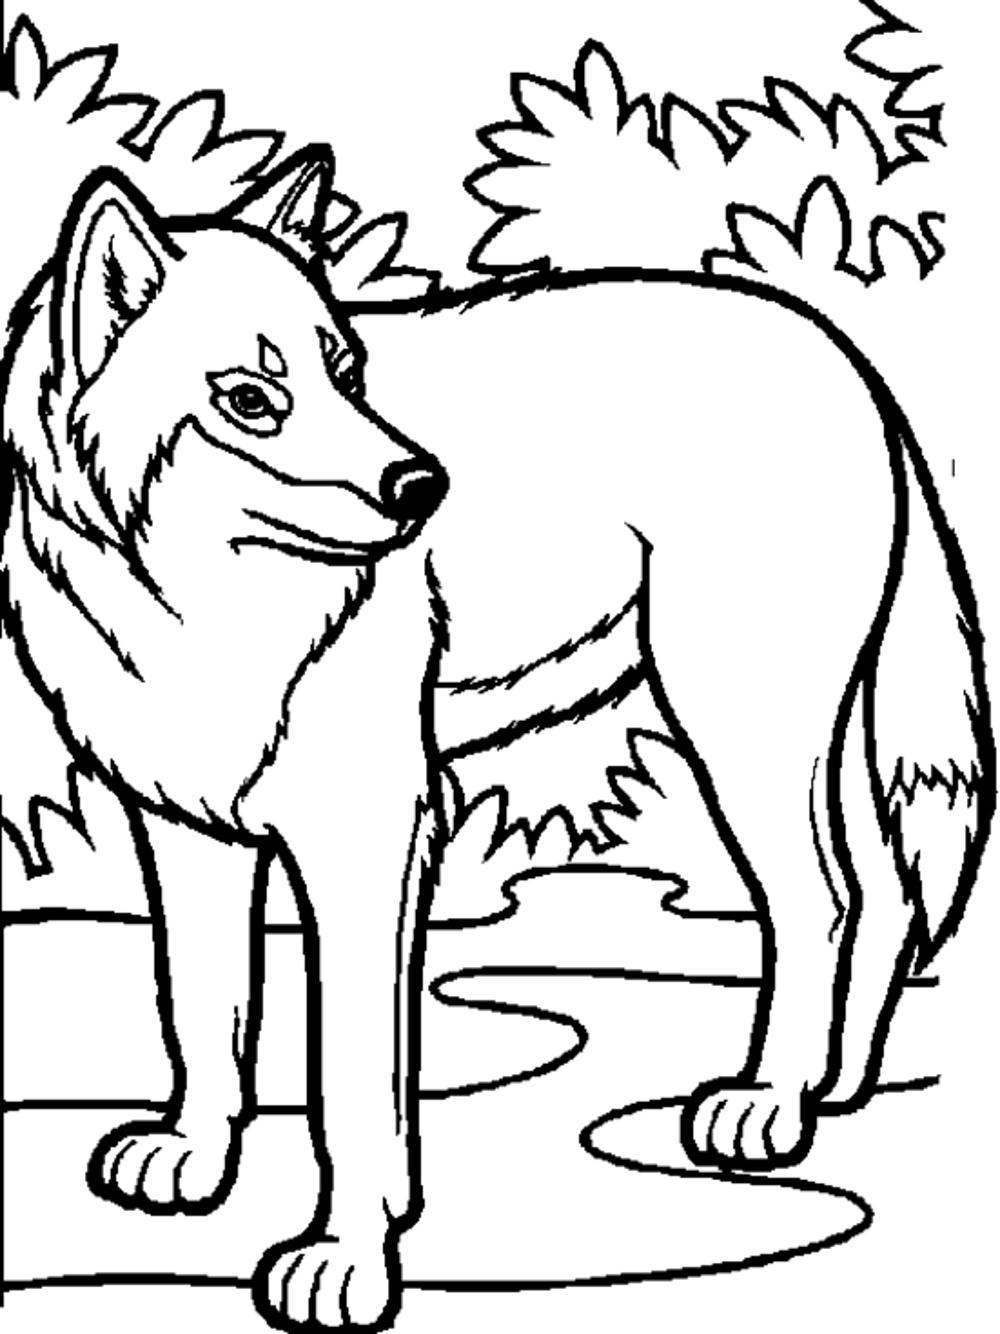 coloring pages wolves - photo#11